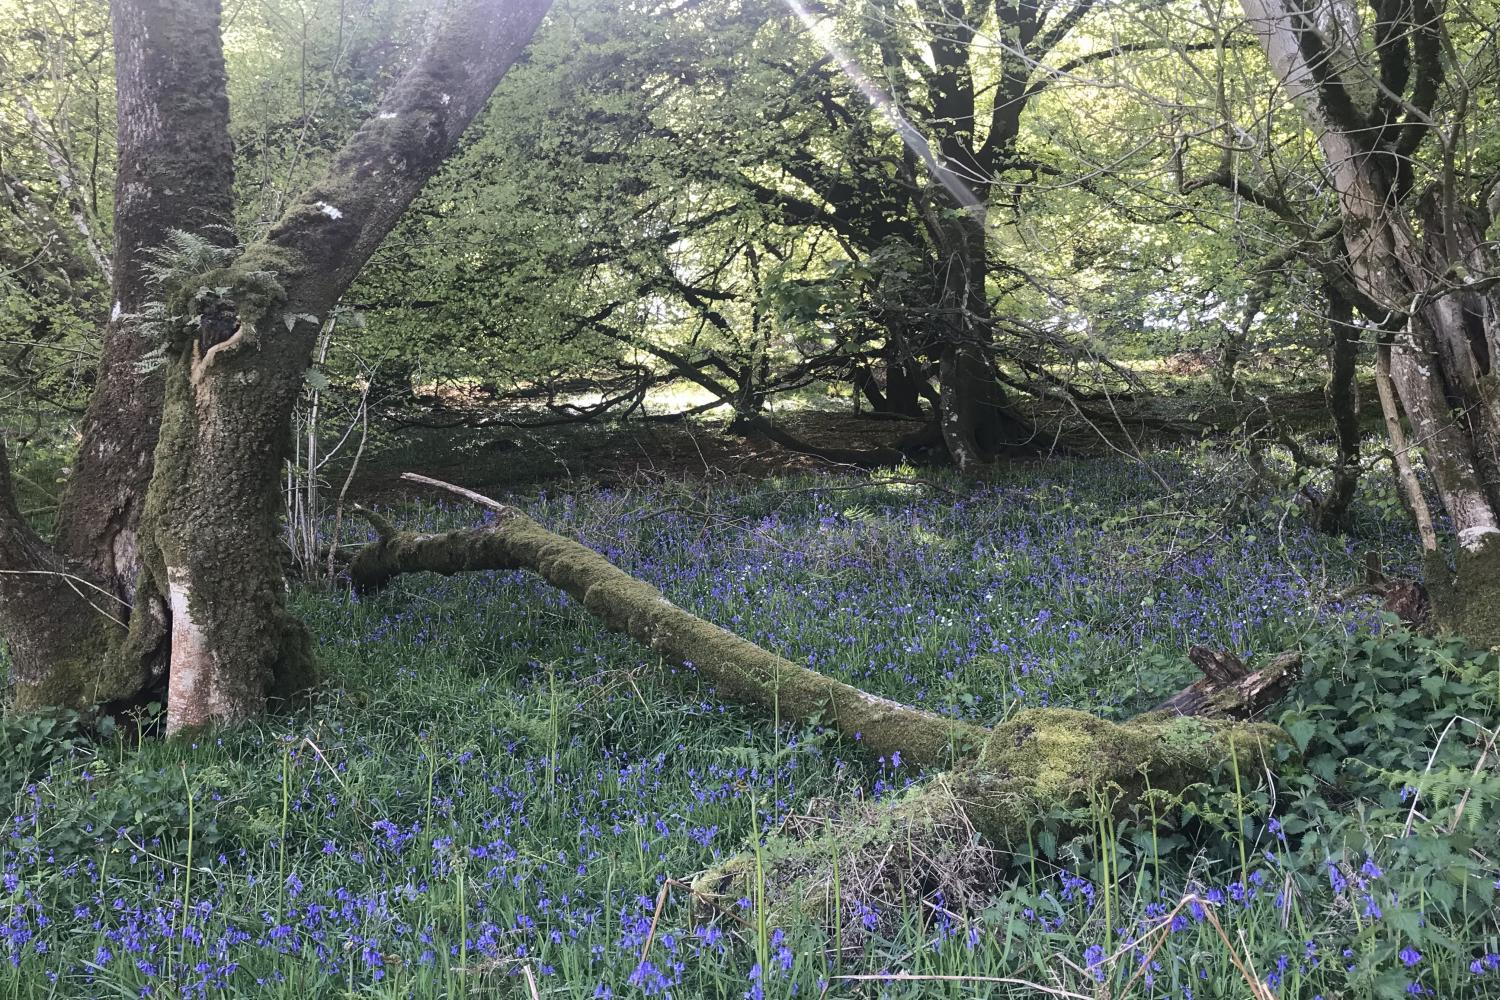 Walks from The Cow Shed with bluebells in the woods